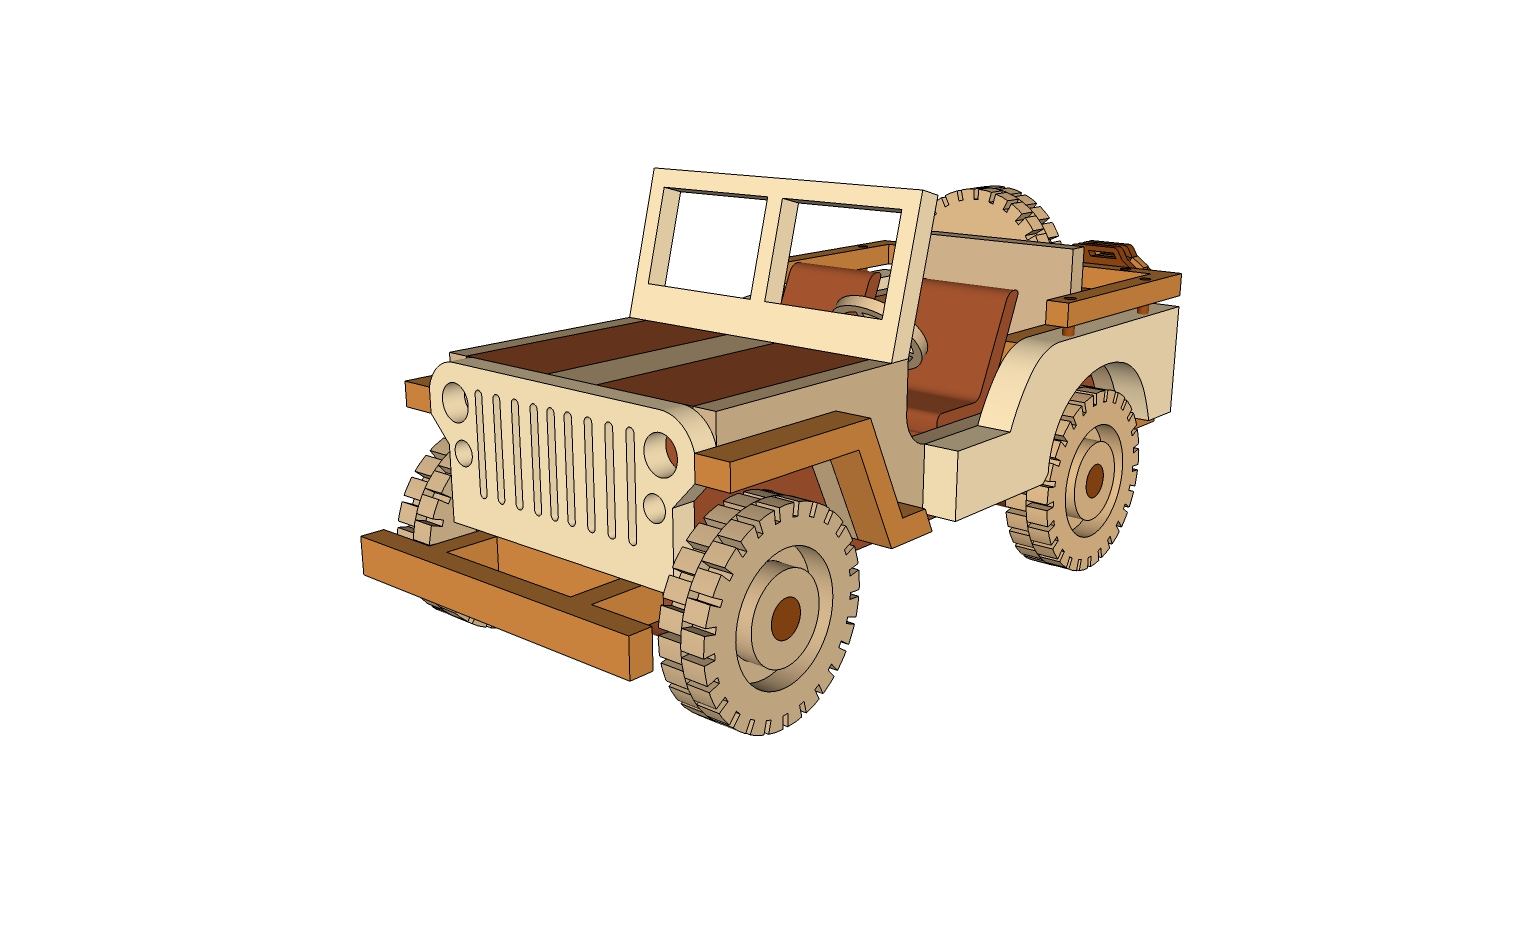 jeep willys - plans